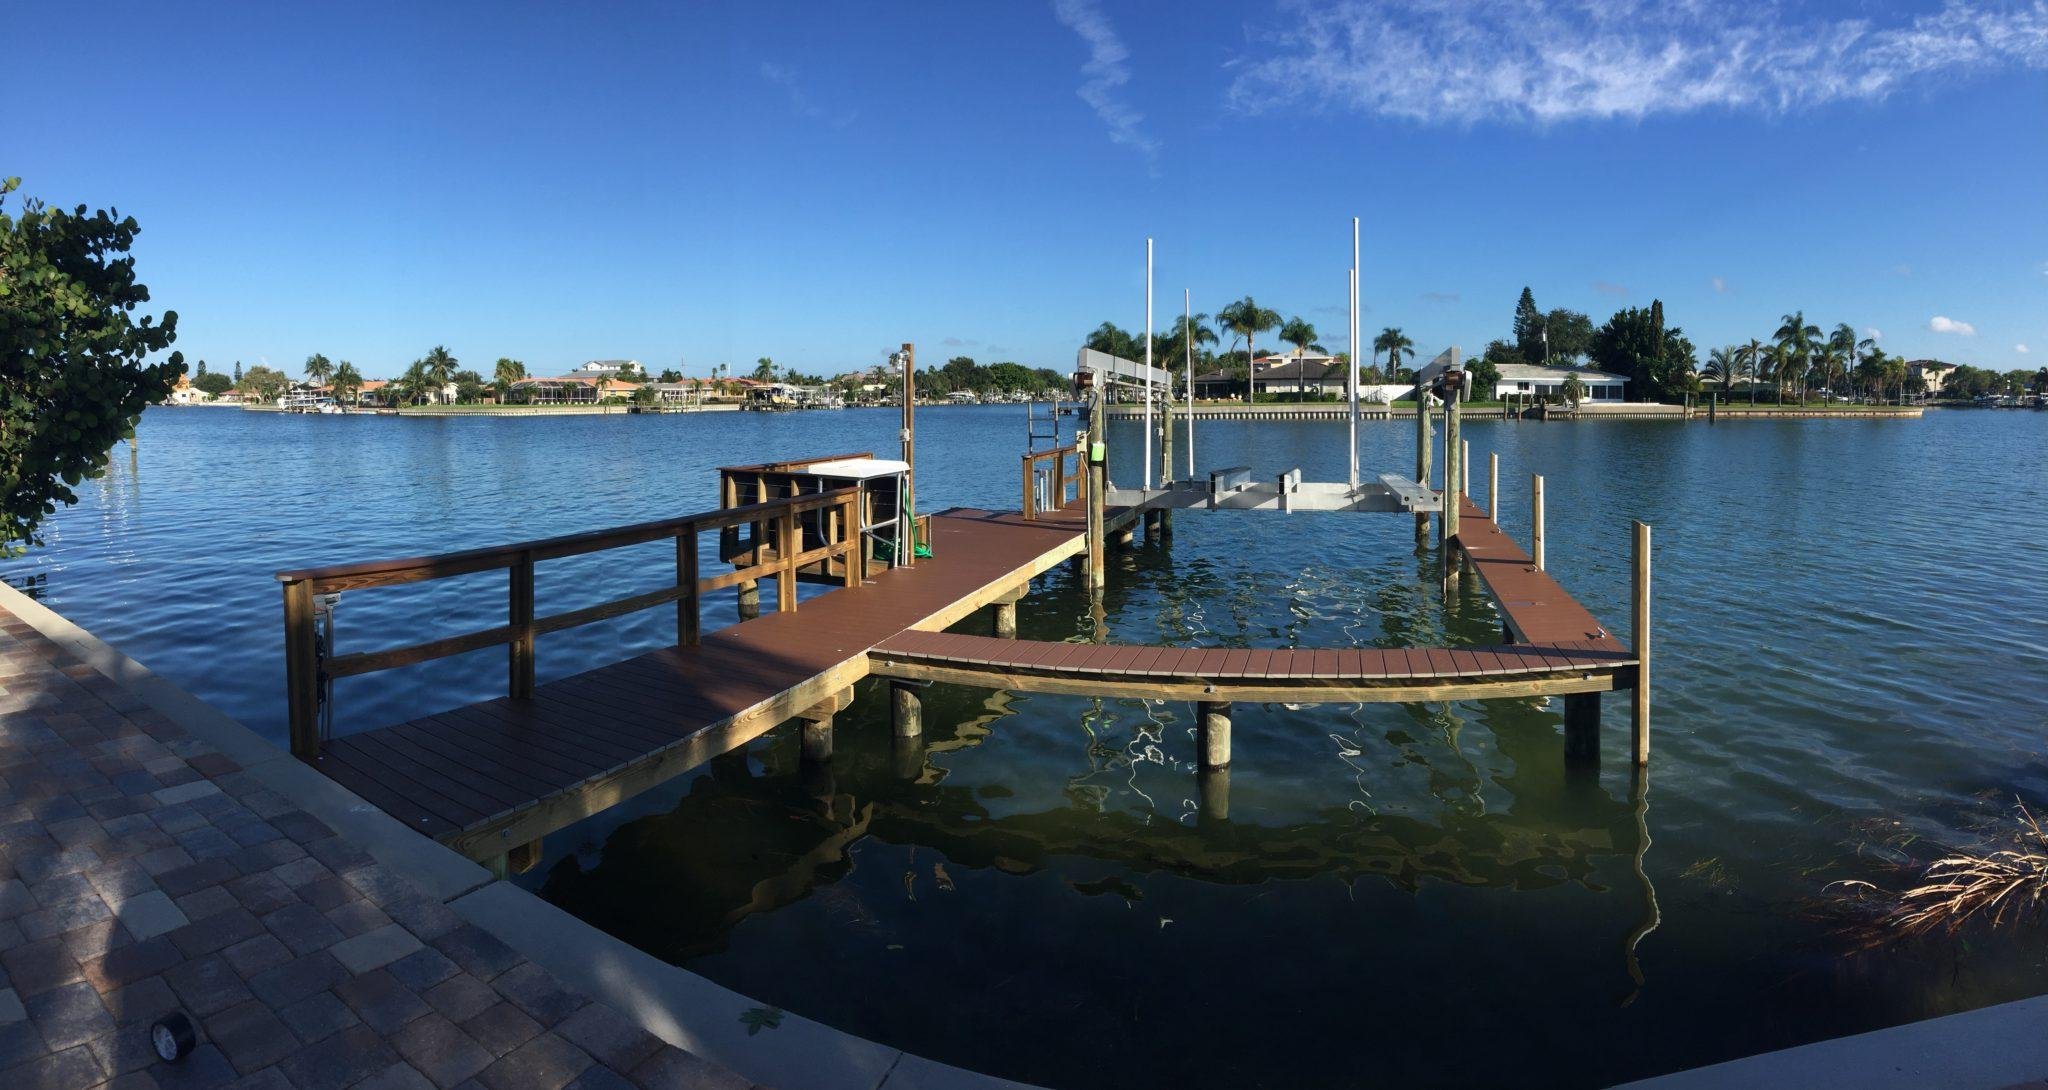 A Trex stationary dock with a catwalk around a aluminum boat lift on the water